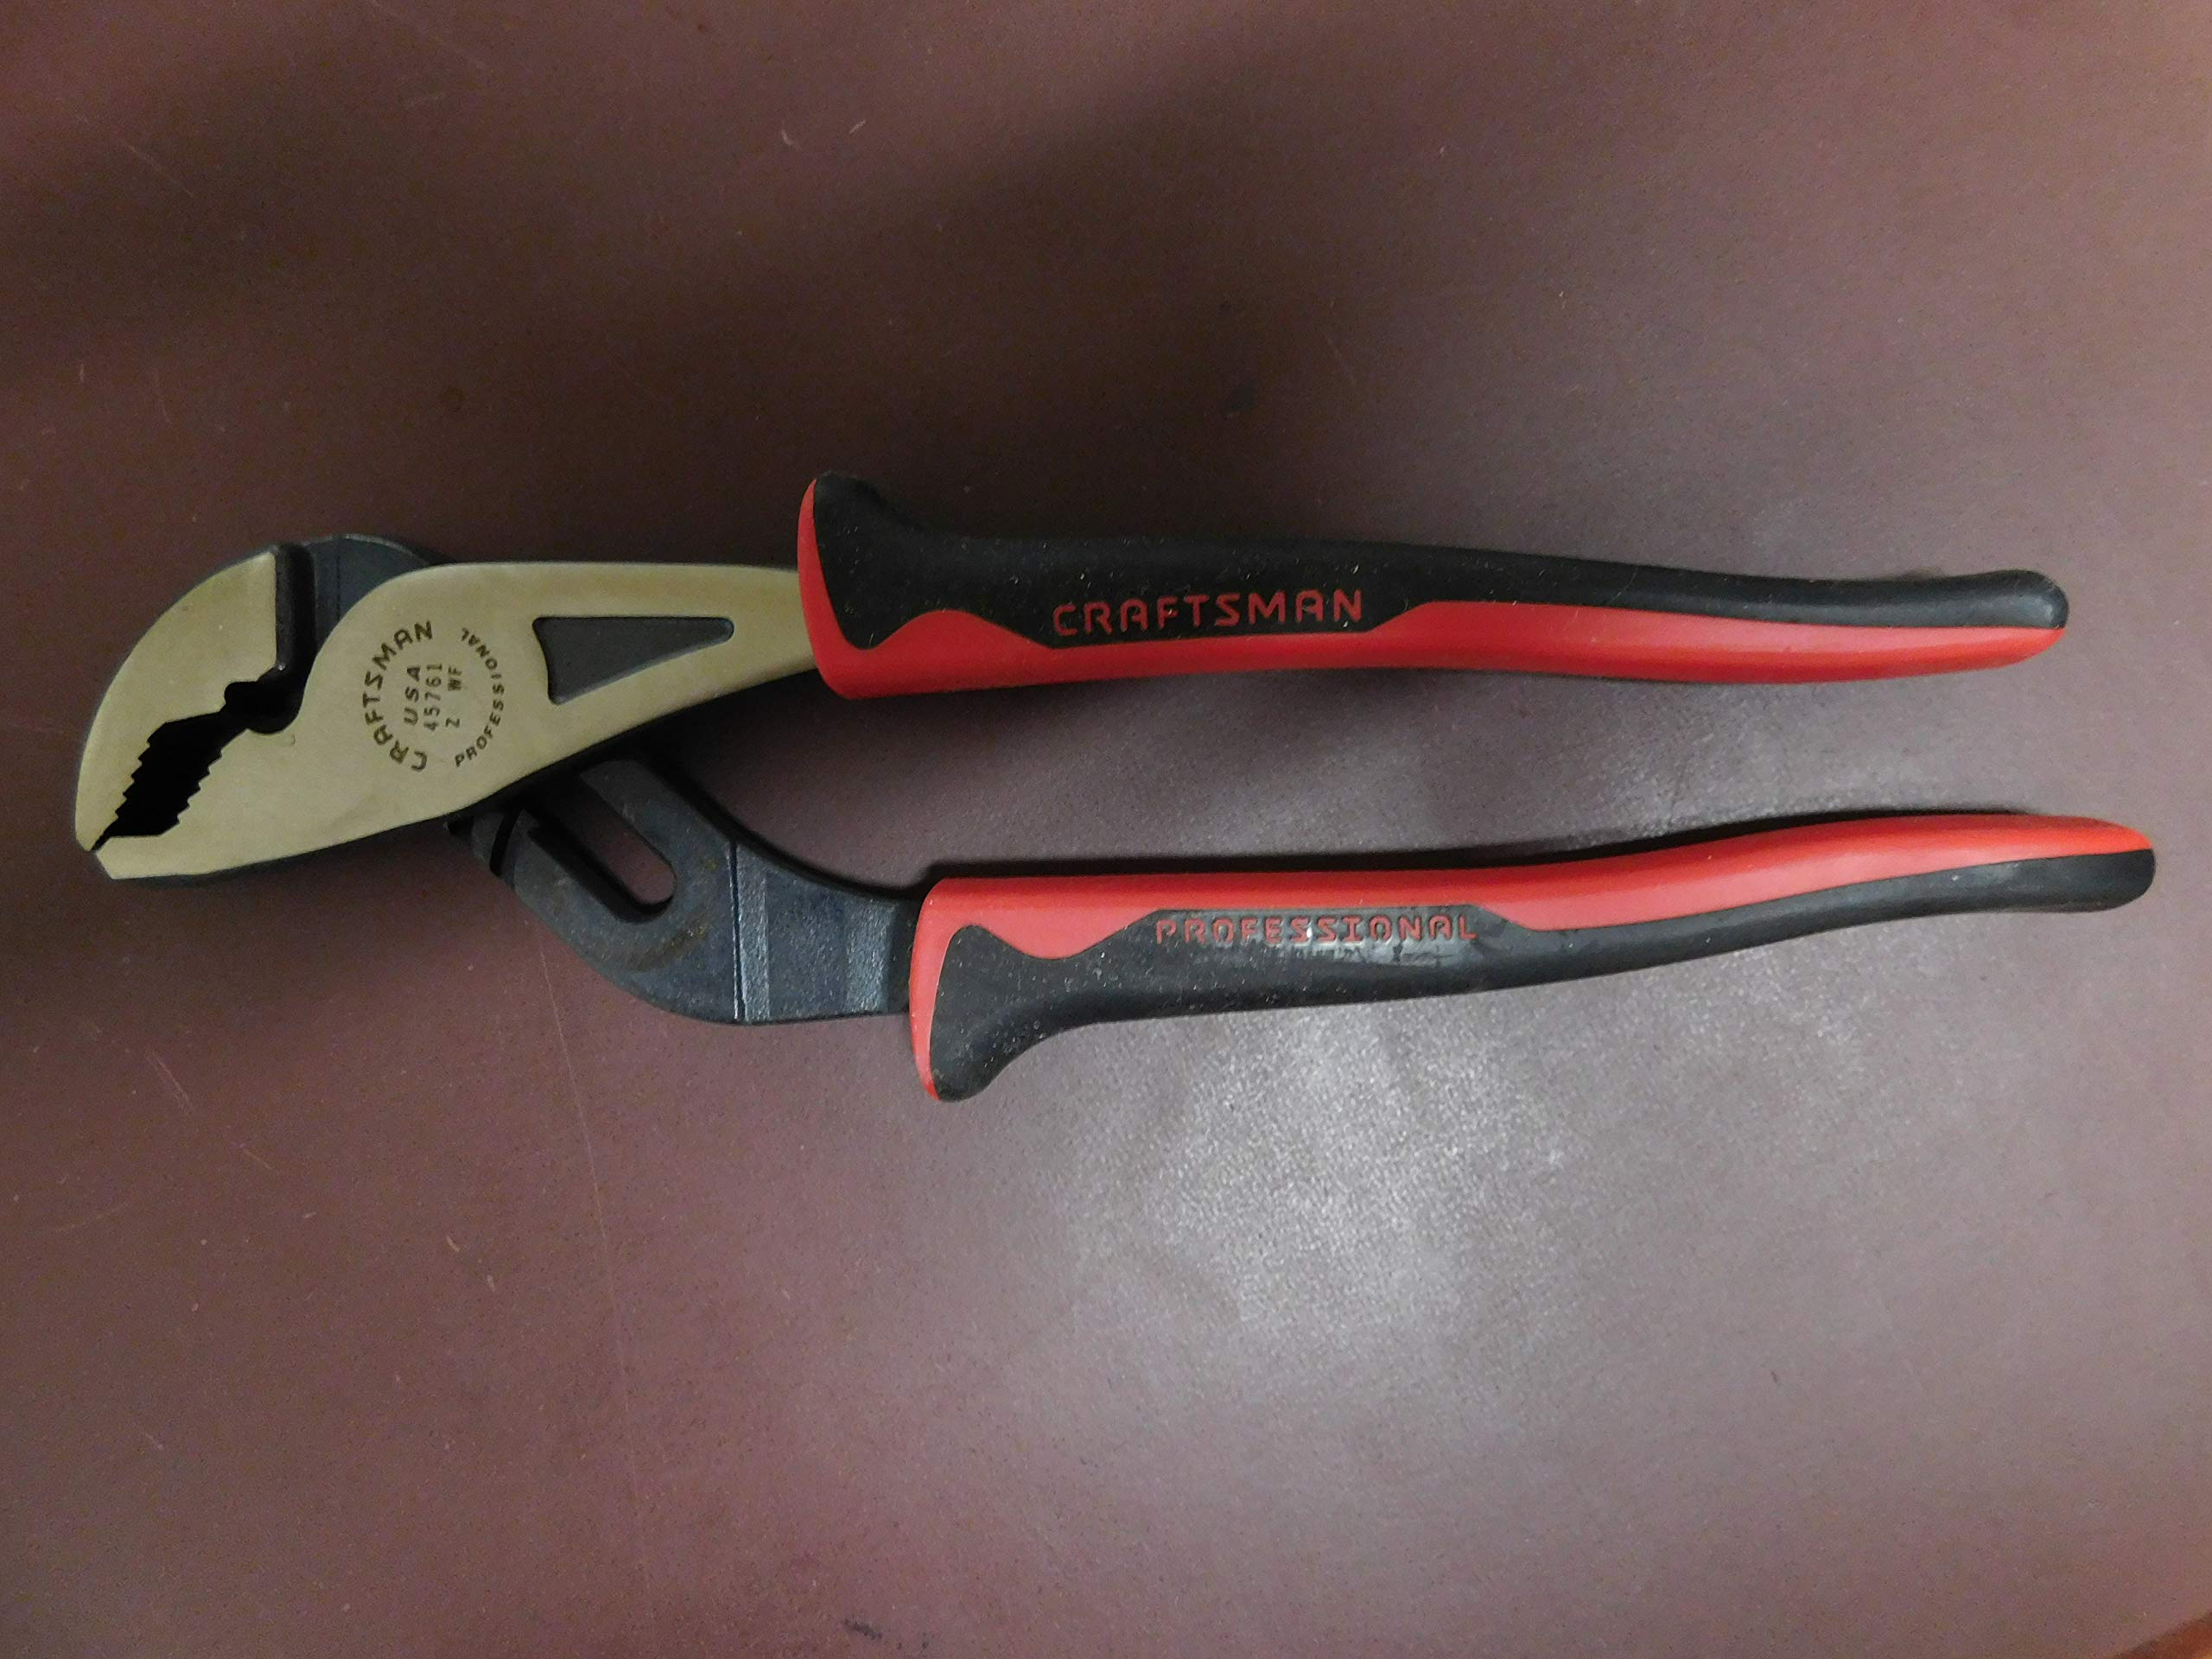 Craftsman Professional 9 1/2'' Arc Joint Pliers with Cushion Grip, Vintage, Made in USA